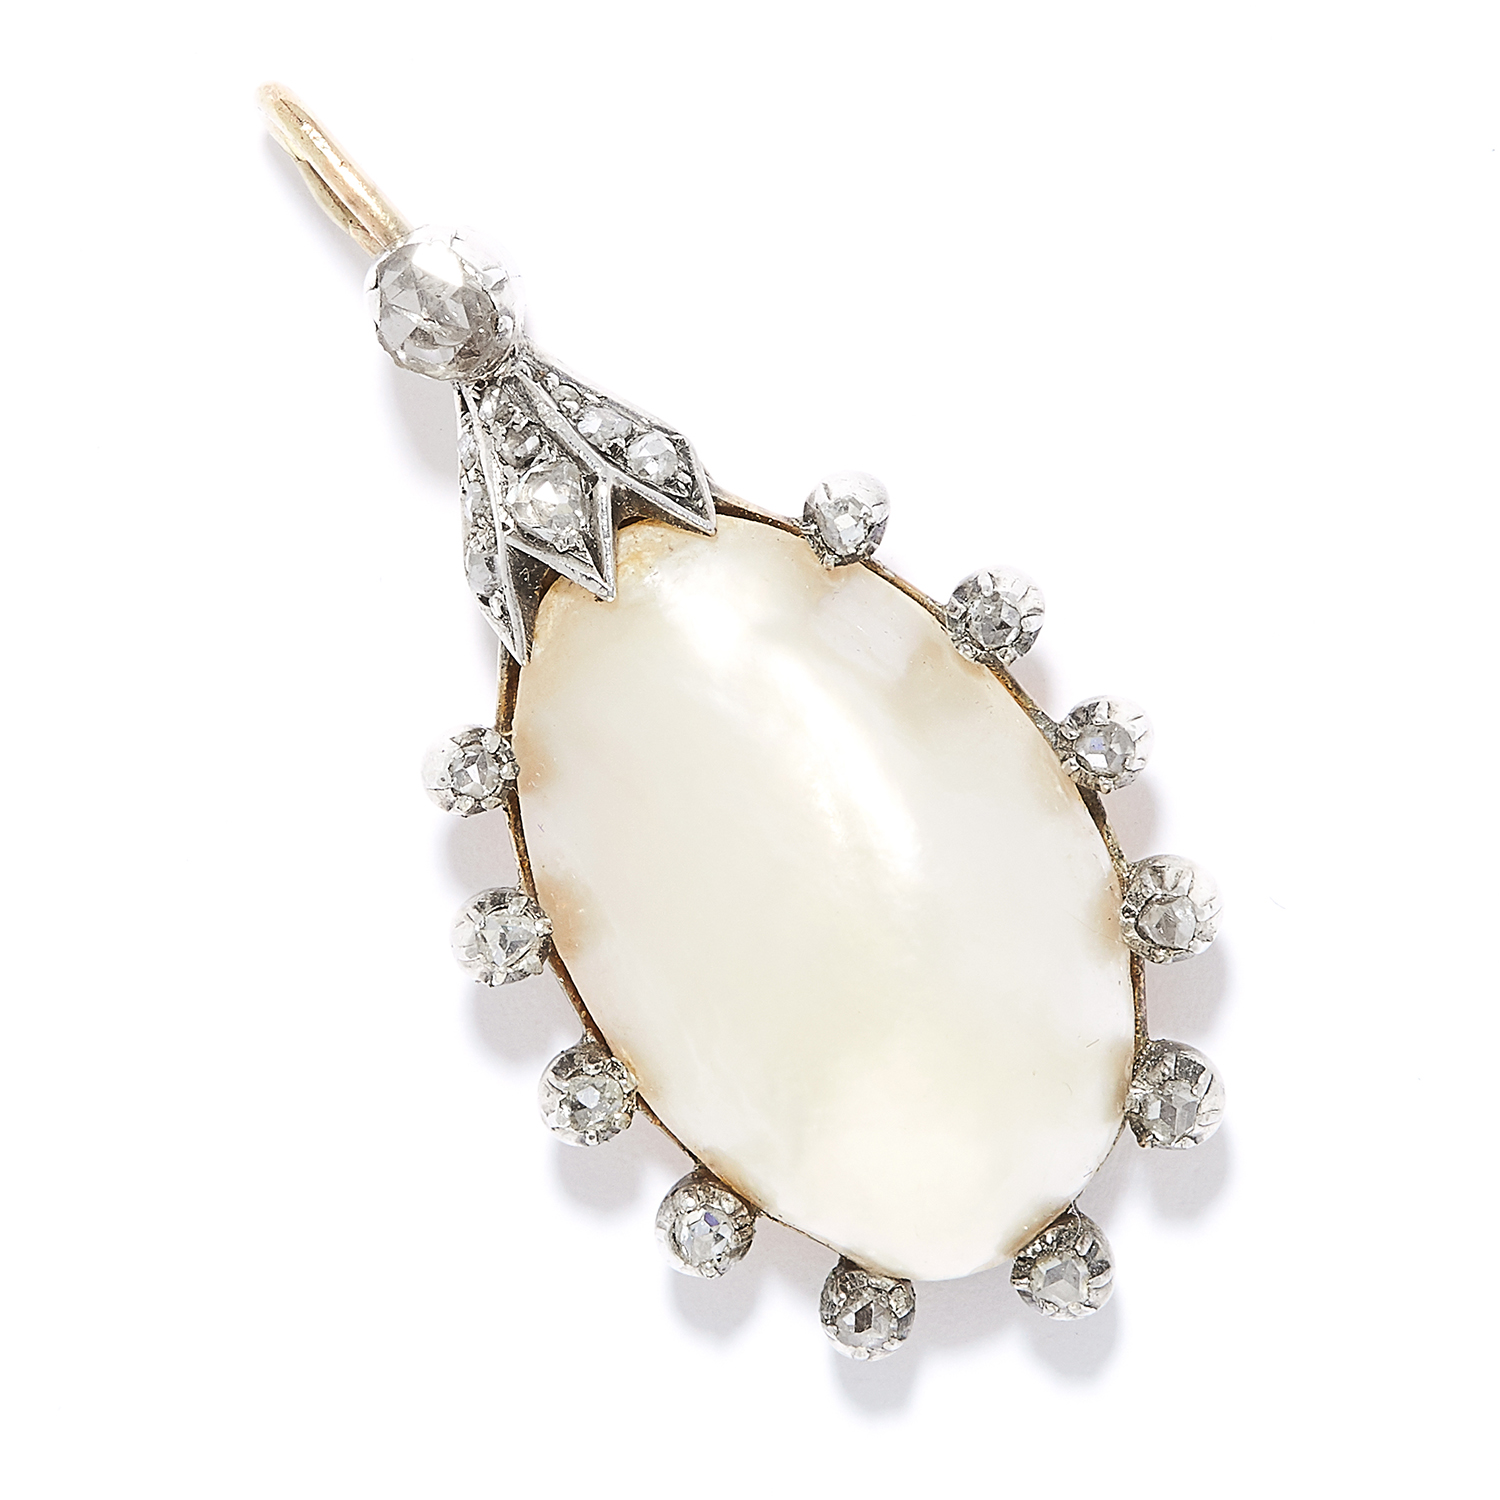 ANTIQUE PEARL AND DIAMOND PENDANT in high carat gold, set with a large pearl in border of rose cut